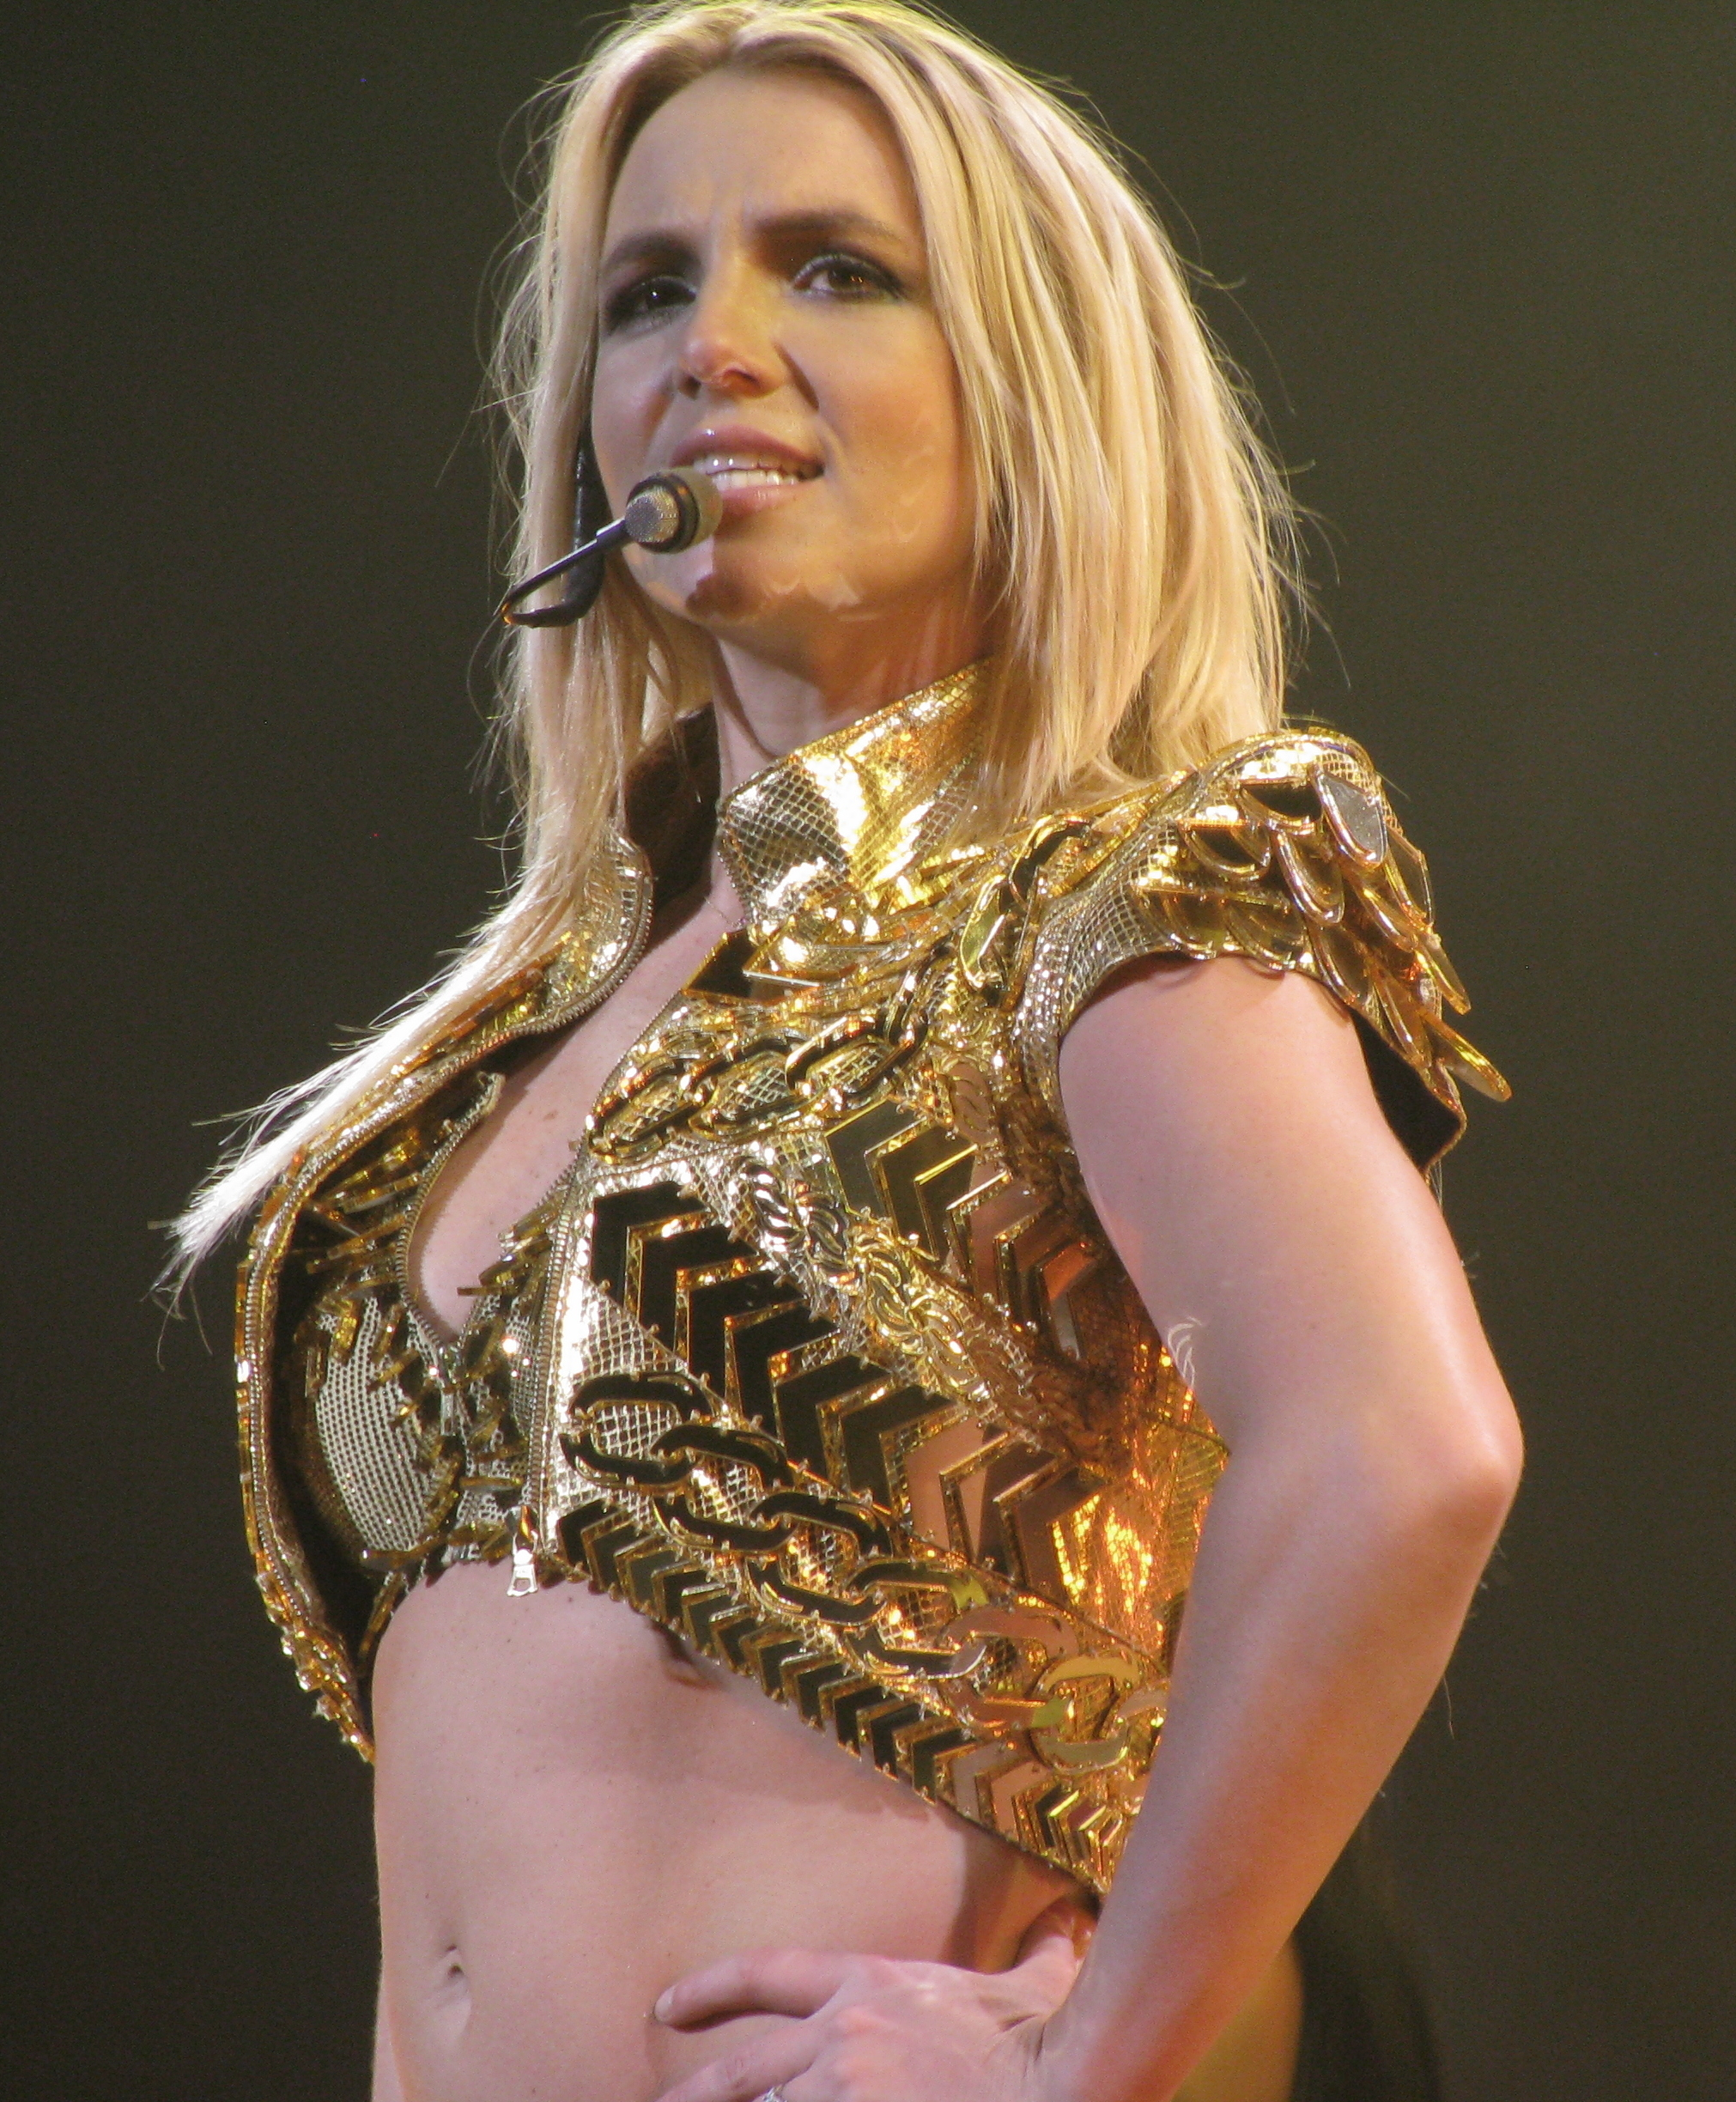 File:Britney Spears 2, 2011.jpg - Wikipedia бритни спирс википедия